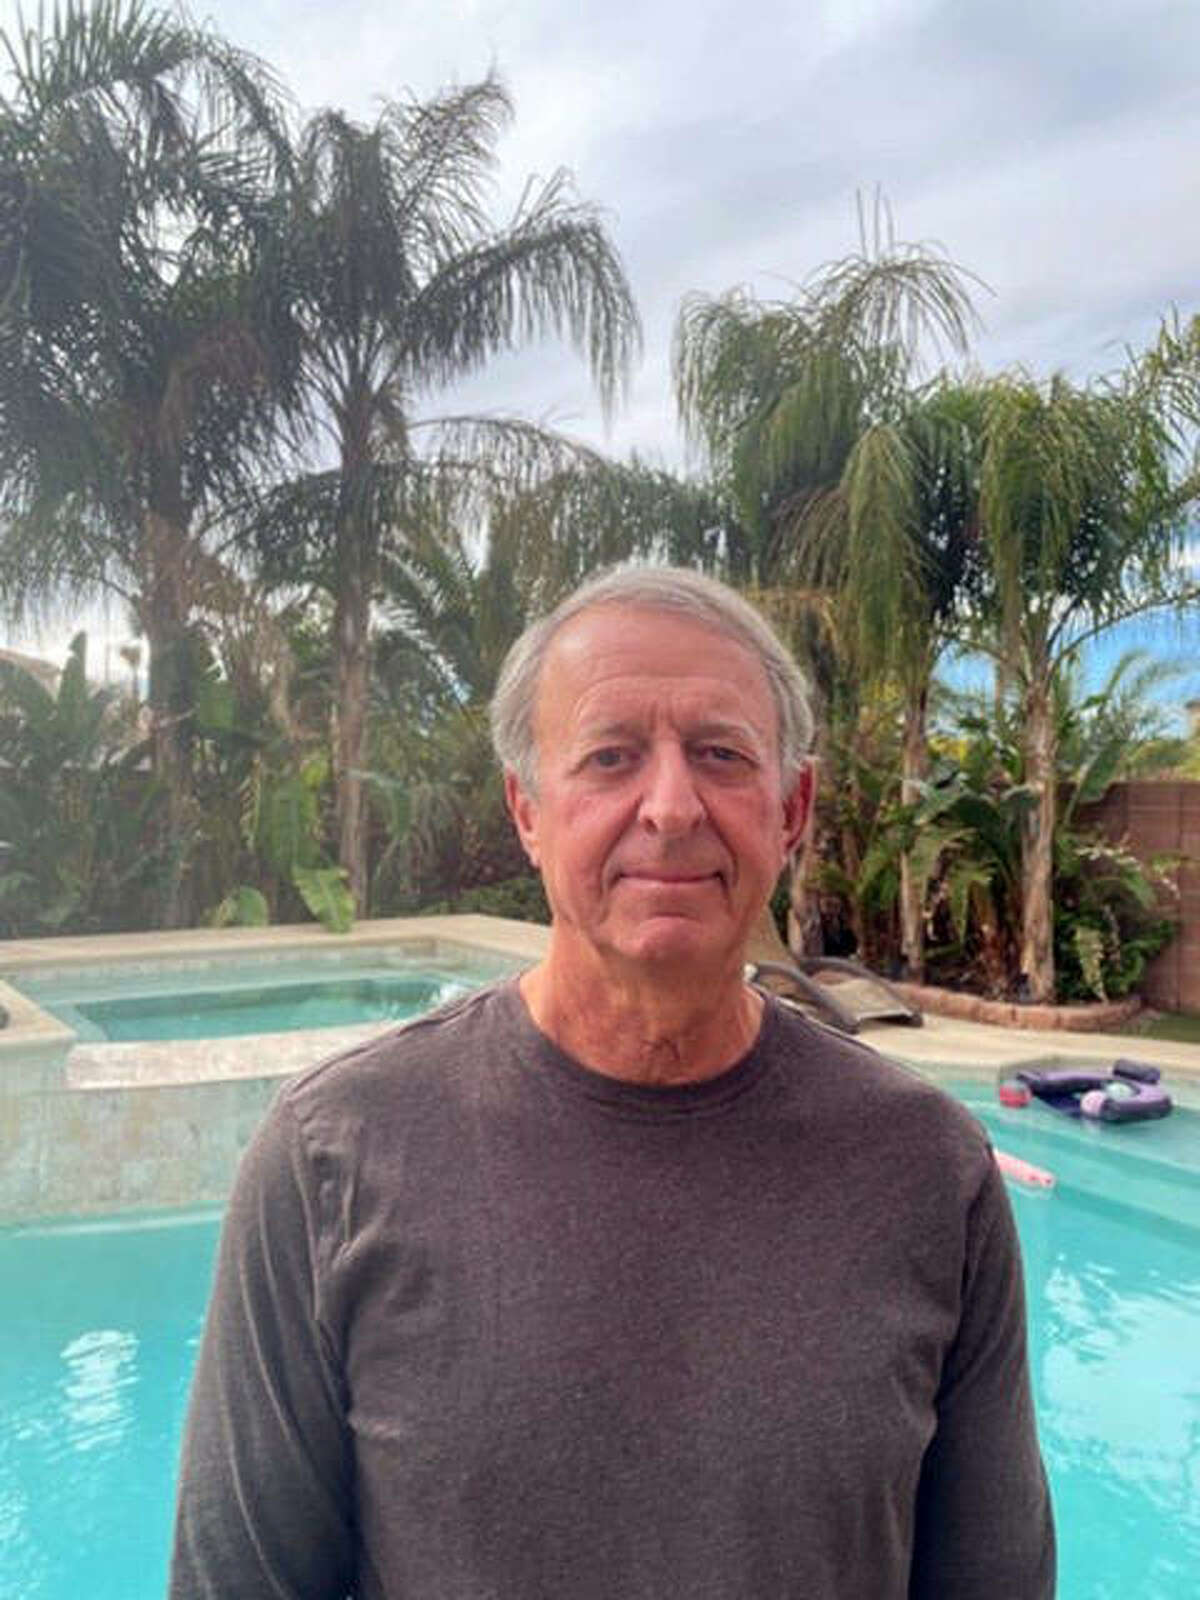 Former Glen Carbon Treasurer Larry Lucy poolside Monday at his winter home in Las Vegas, Nevada.